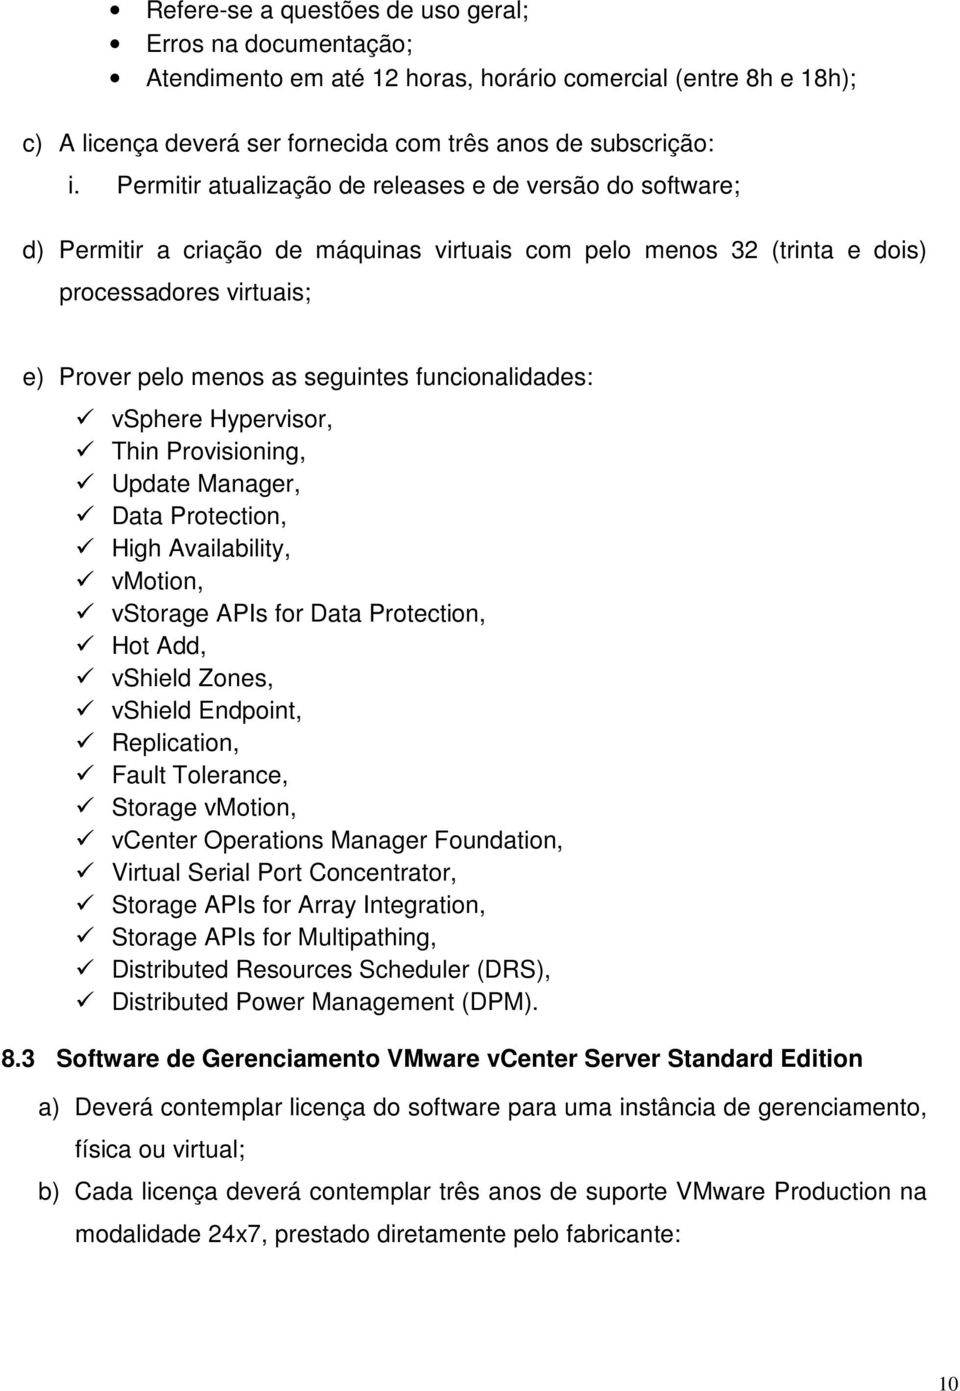 funcionalidades: vsphere Hypervisor, Thin Provisioning, Update Manager, Data Protection, High Availability, vmotion, vstorage APIs for Data Protection, Hot Add, vshield Zones, vshield Endpoint,